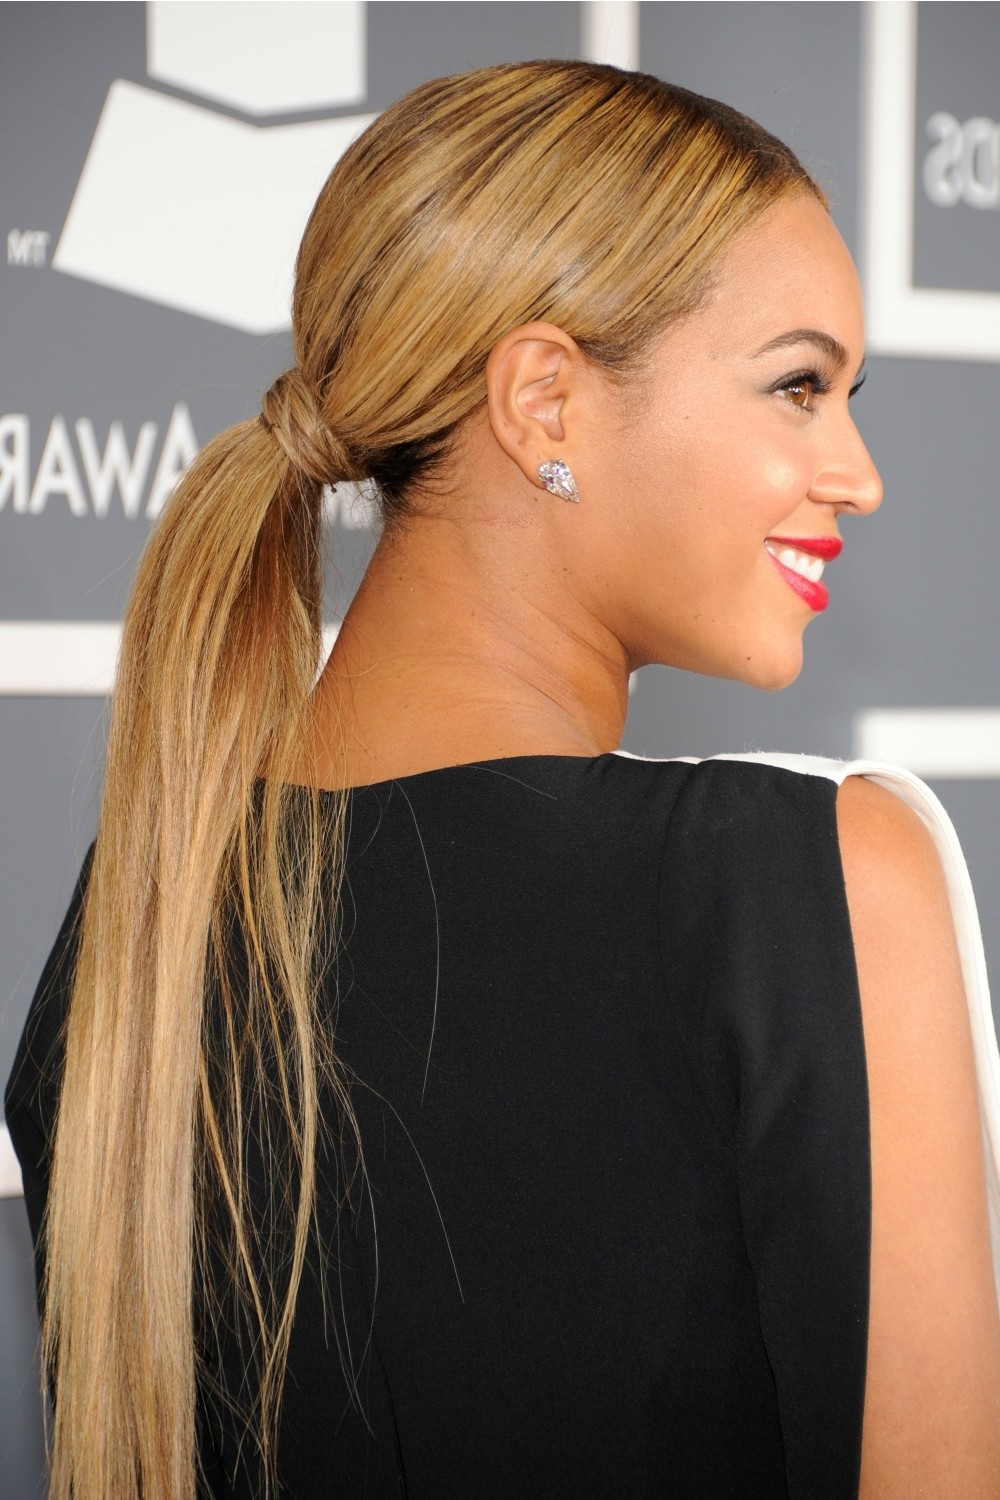 20 Ponytail Hairstyles – Easy Ponytail Ideas You Should This Summer Within Newest Curly Pony Hairstyles For Ultra Long Hair (View 3 of 20)